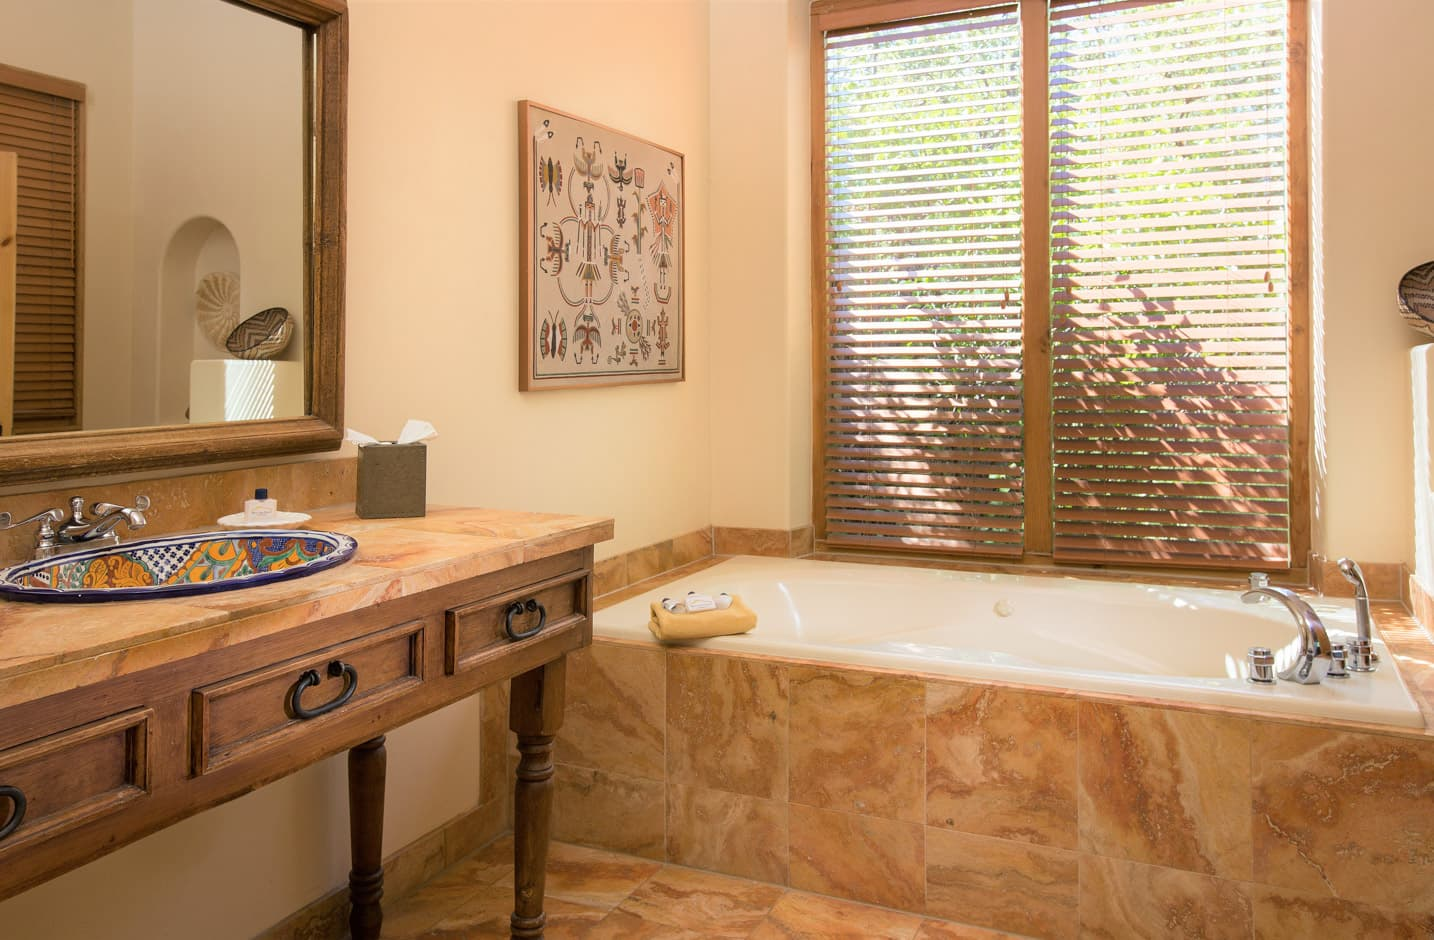 A bathroom with a large tub and a sink and mirror